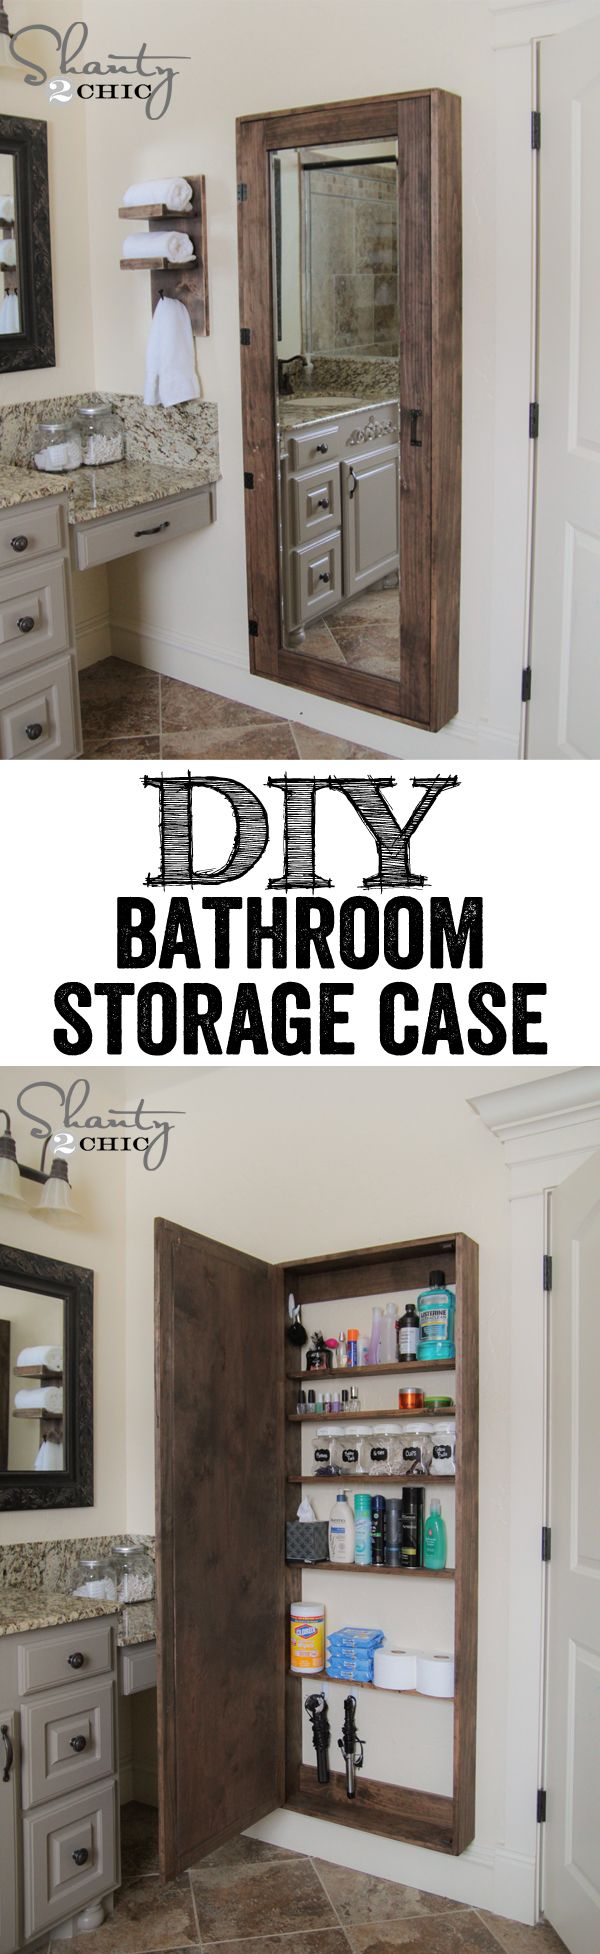 DIY Bathroom Organization Cabinet with Full Length Mirror Tutorial - Really Love this Idea!! (I need to figure out where it would fit...) | Shanty2Chic (2.15.14)